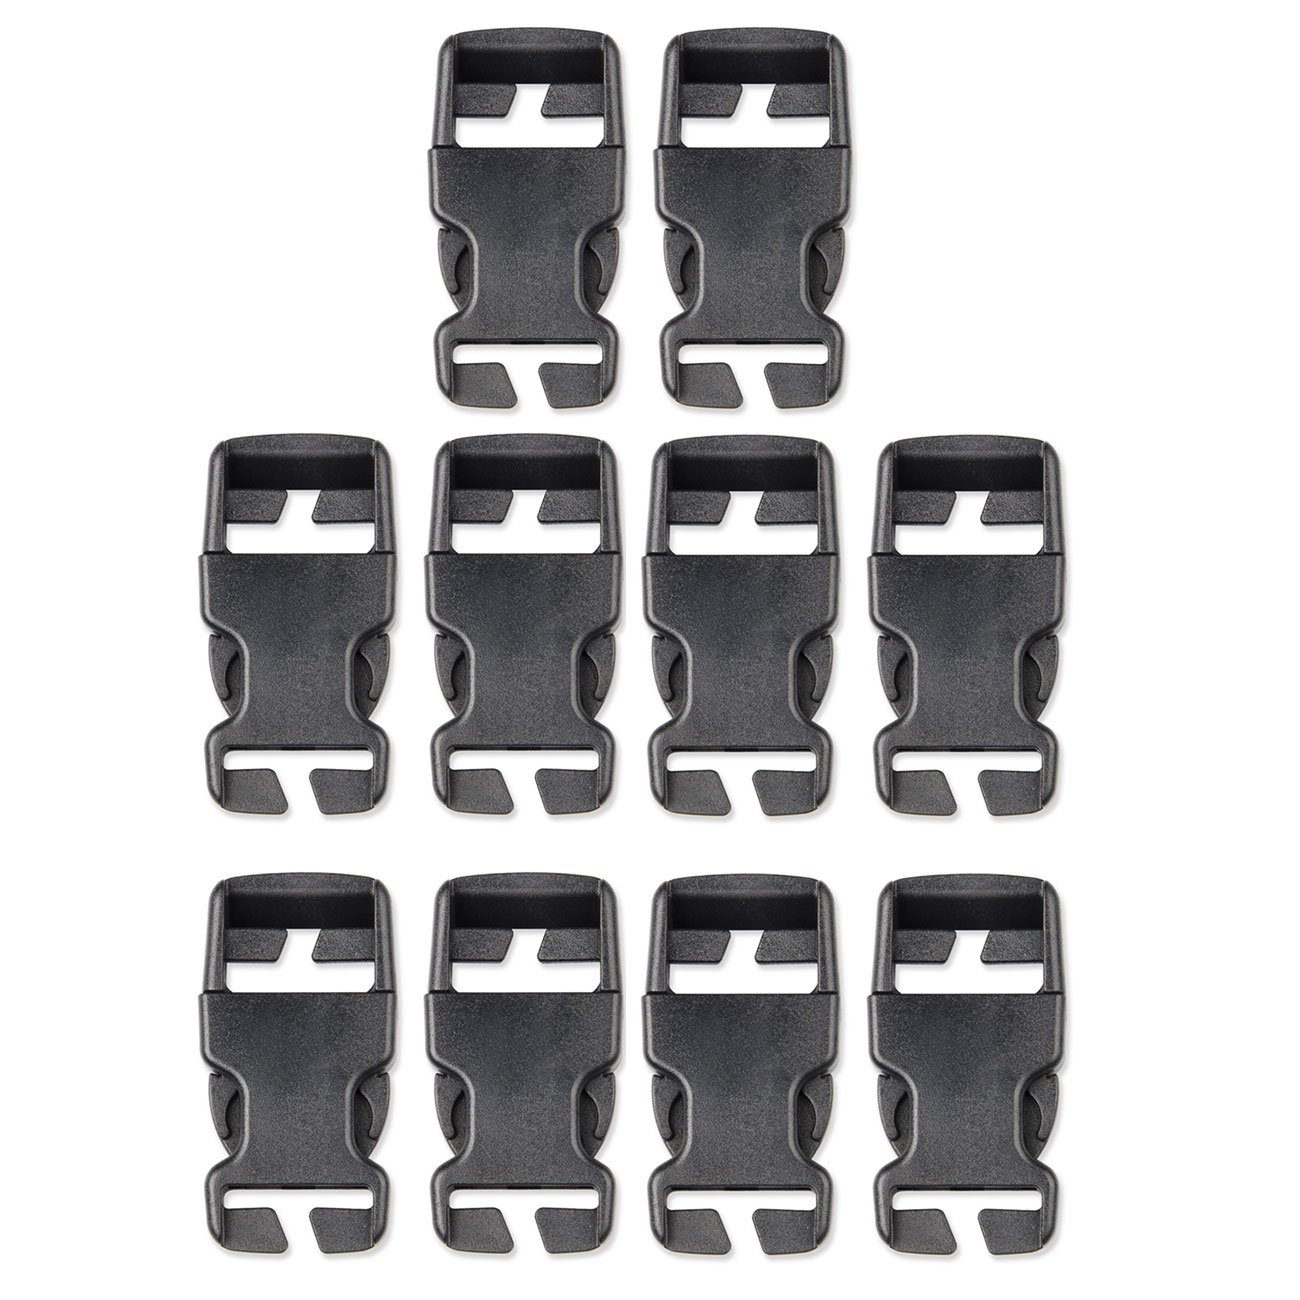 Multi-Size Plastic Buckle Repair Kit Quick Release Buckles No Sewing  Required Buckles for Backpack Bag (10pcs Black,25 mm)